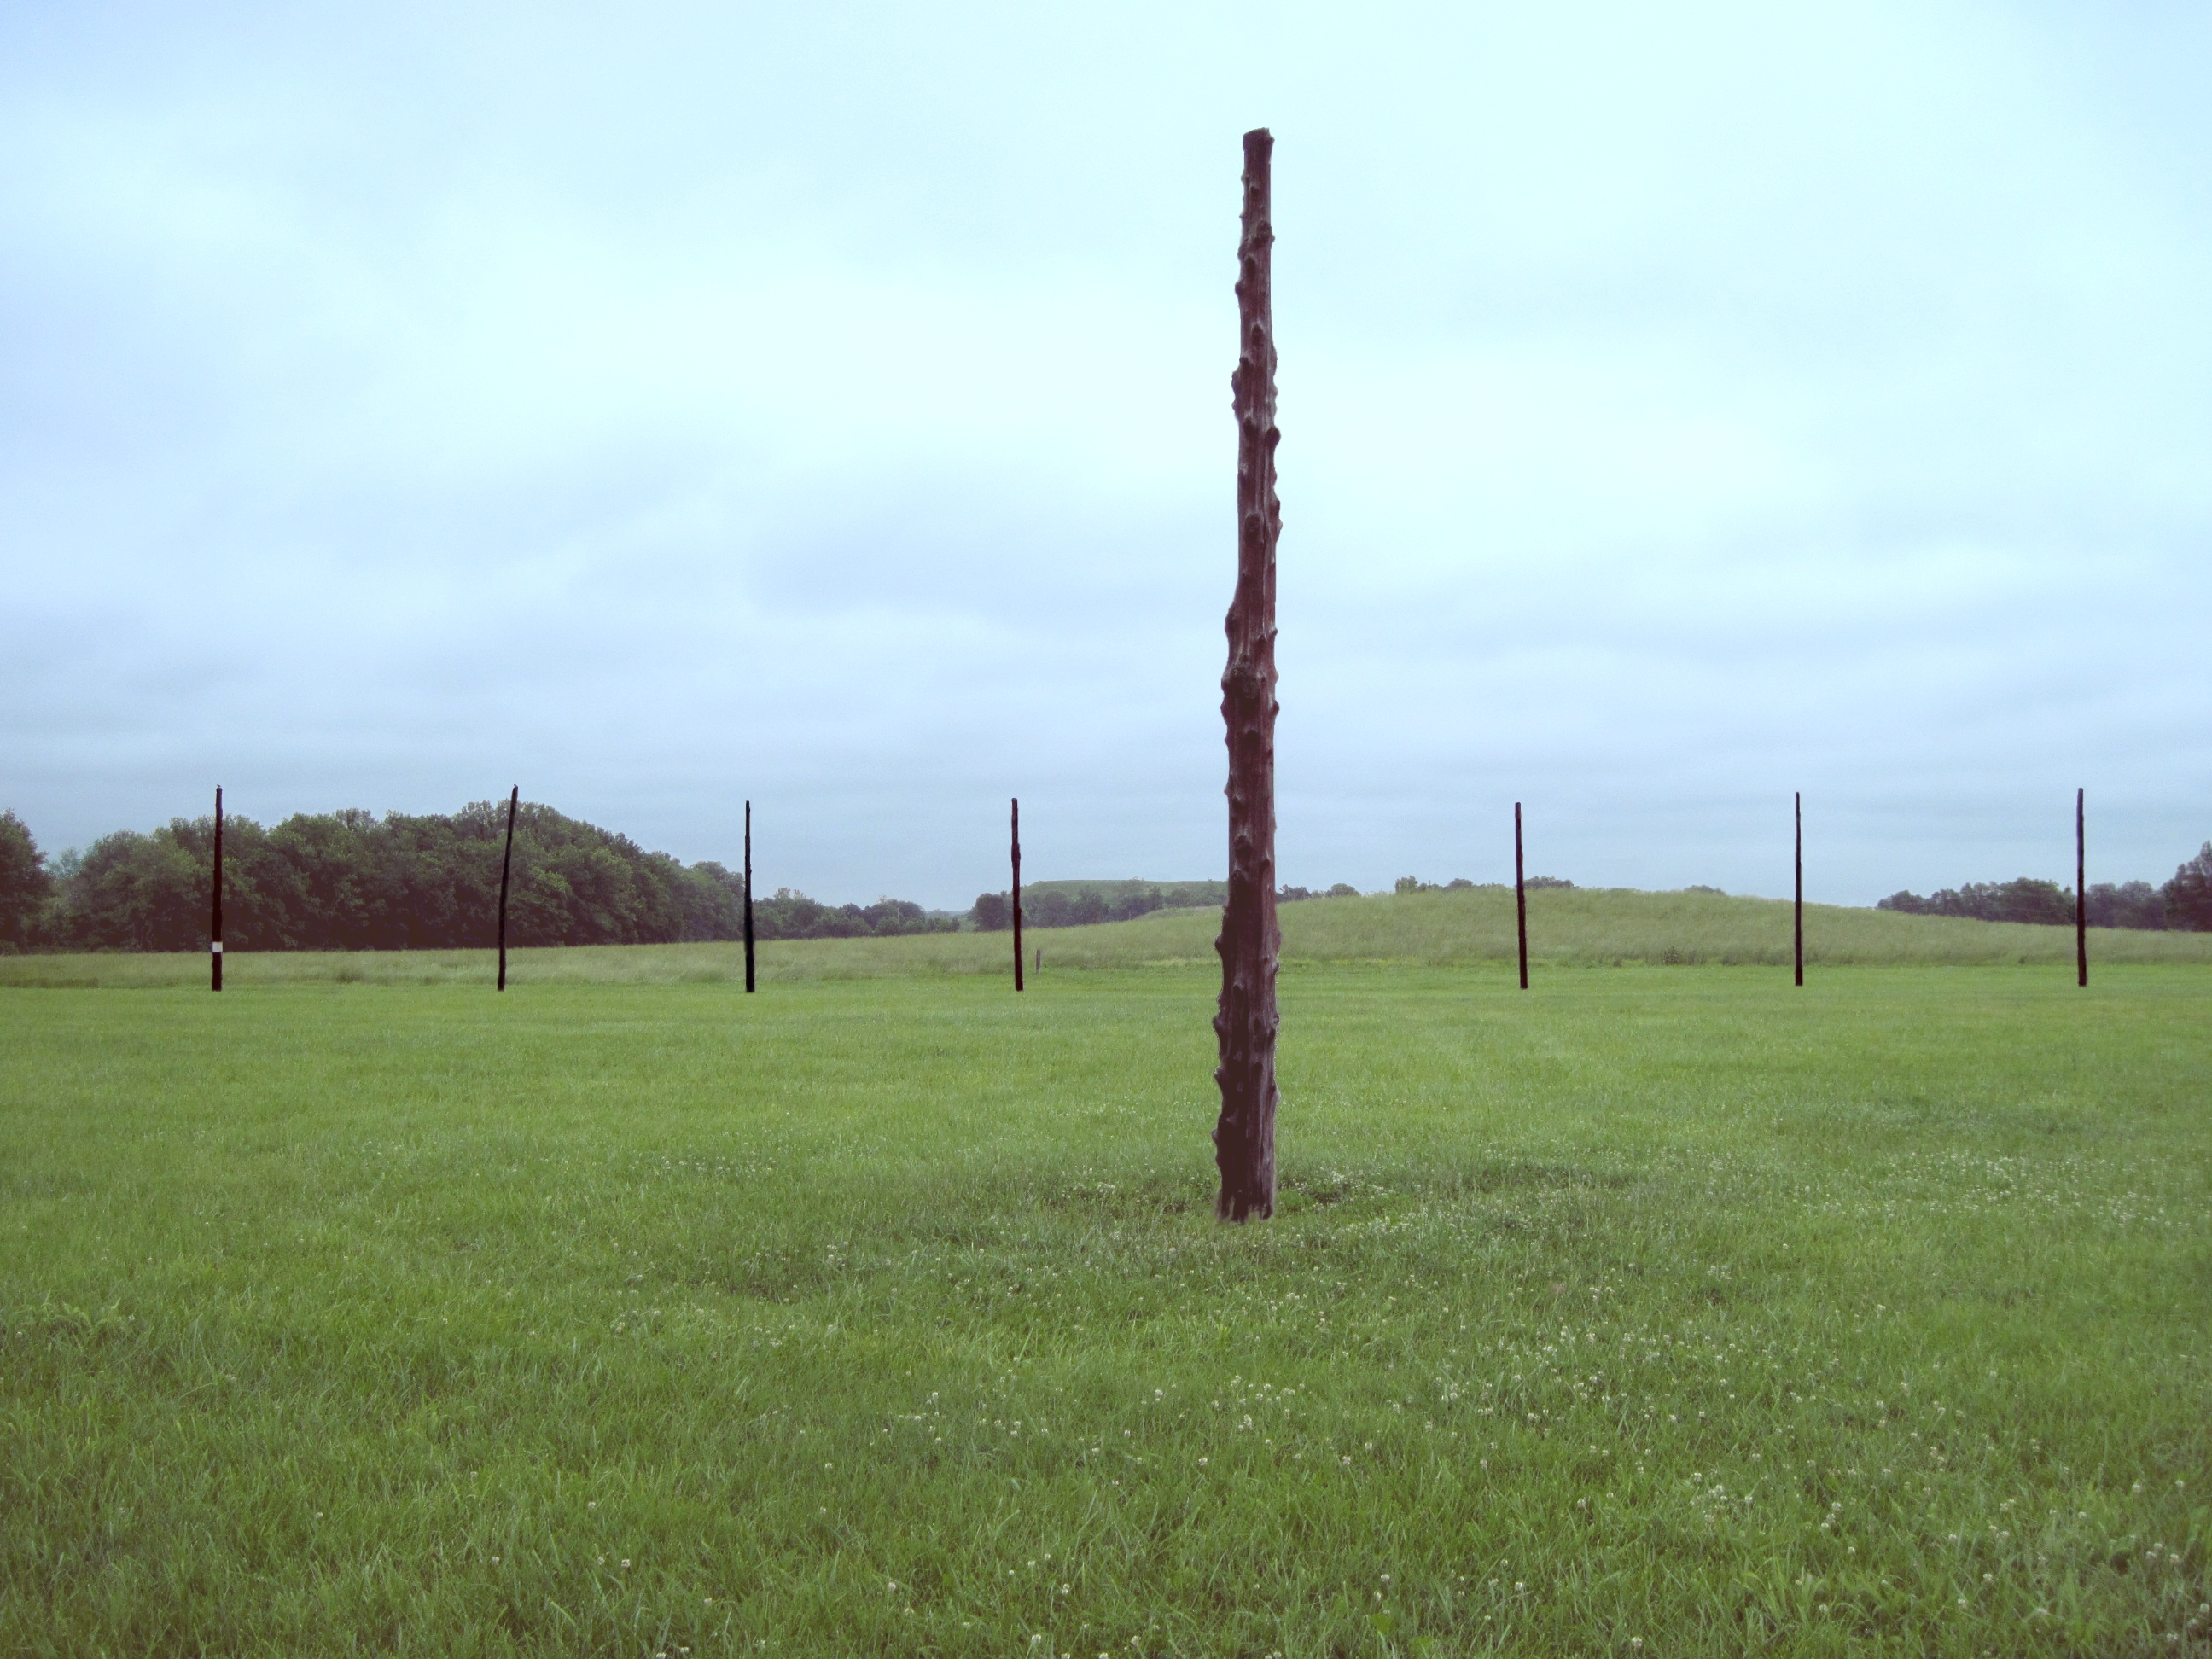 the cahokia mounds Courtesy of the cahokia mounds state historic site, illinois cahokia was a city that, at its peak from ad 1050-1200, was larger than many european cities, including london the city was.